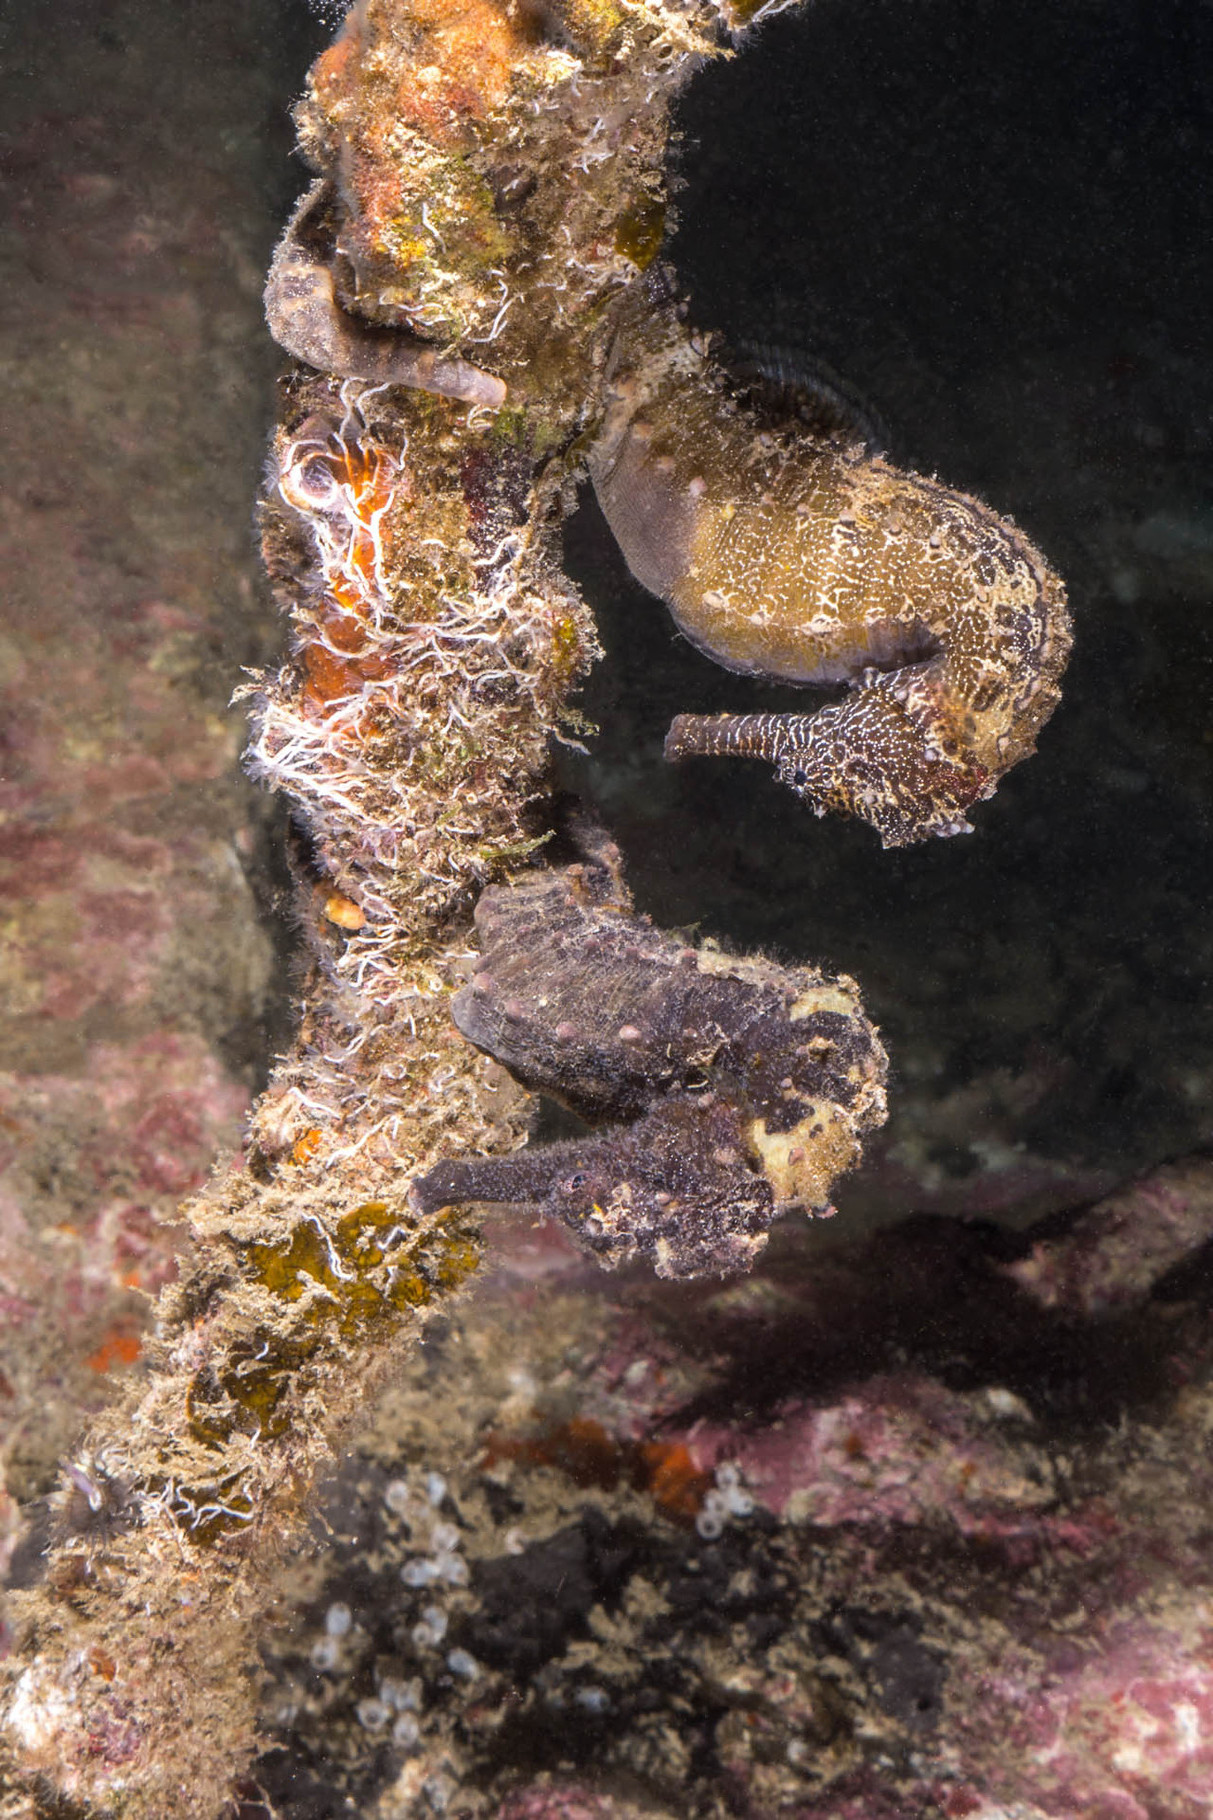 Two zebra-snout seahorses (Hippocampus barbouri)